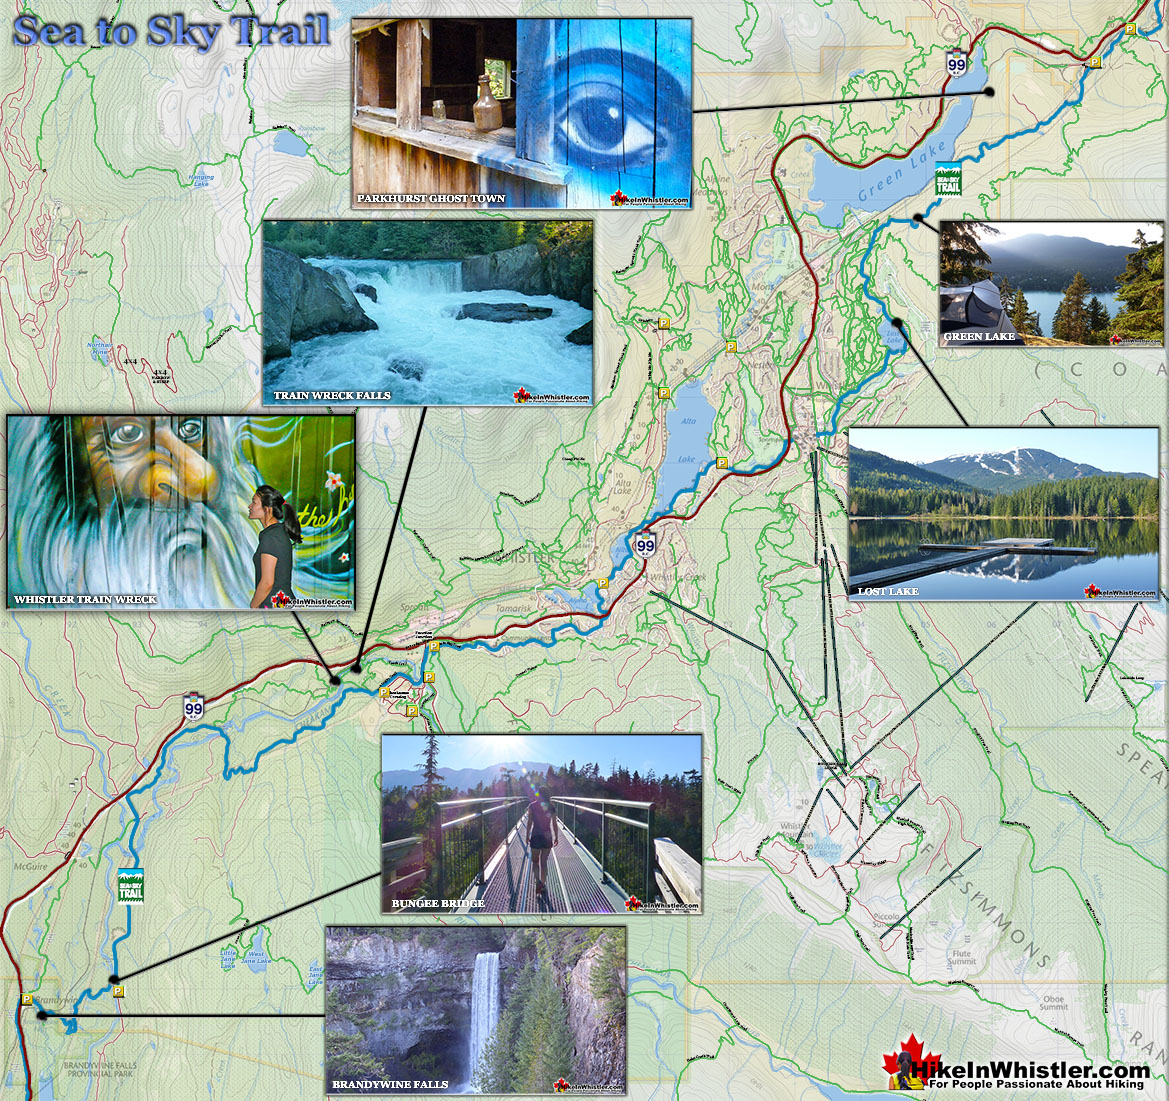 The Sea to Sky Trail Map